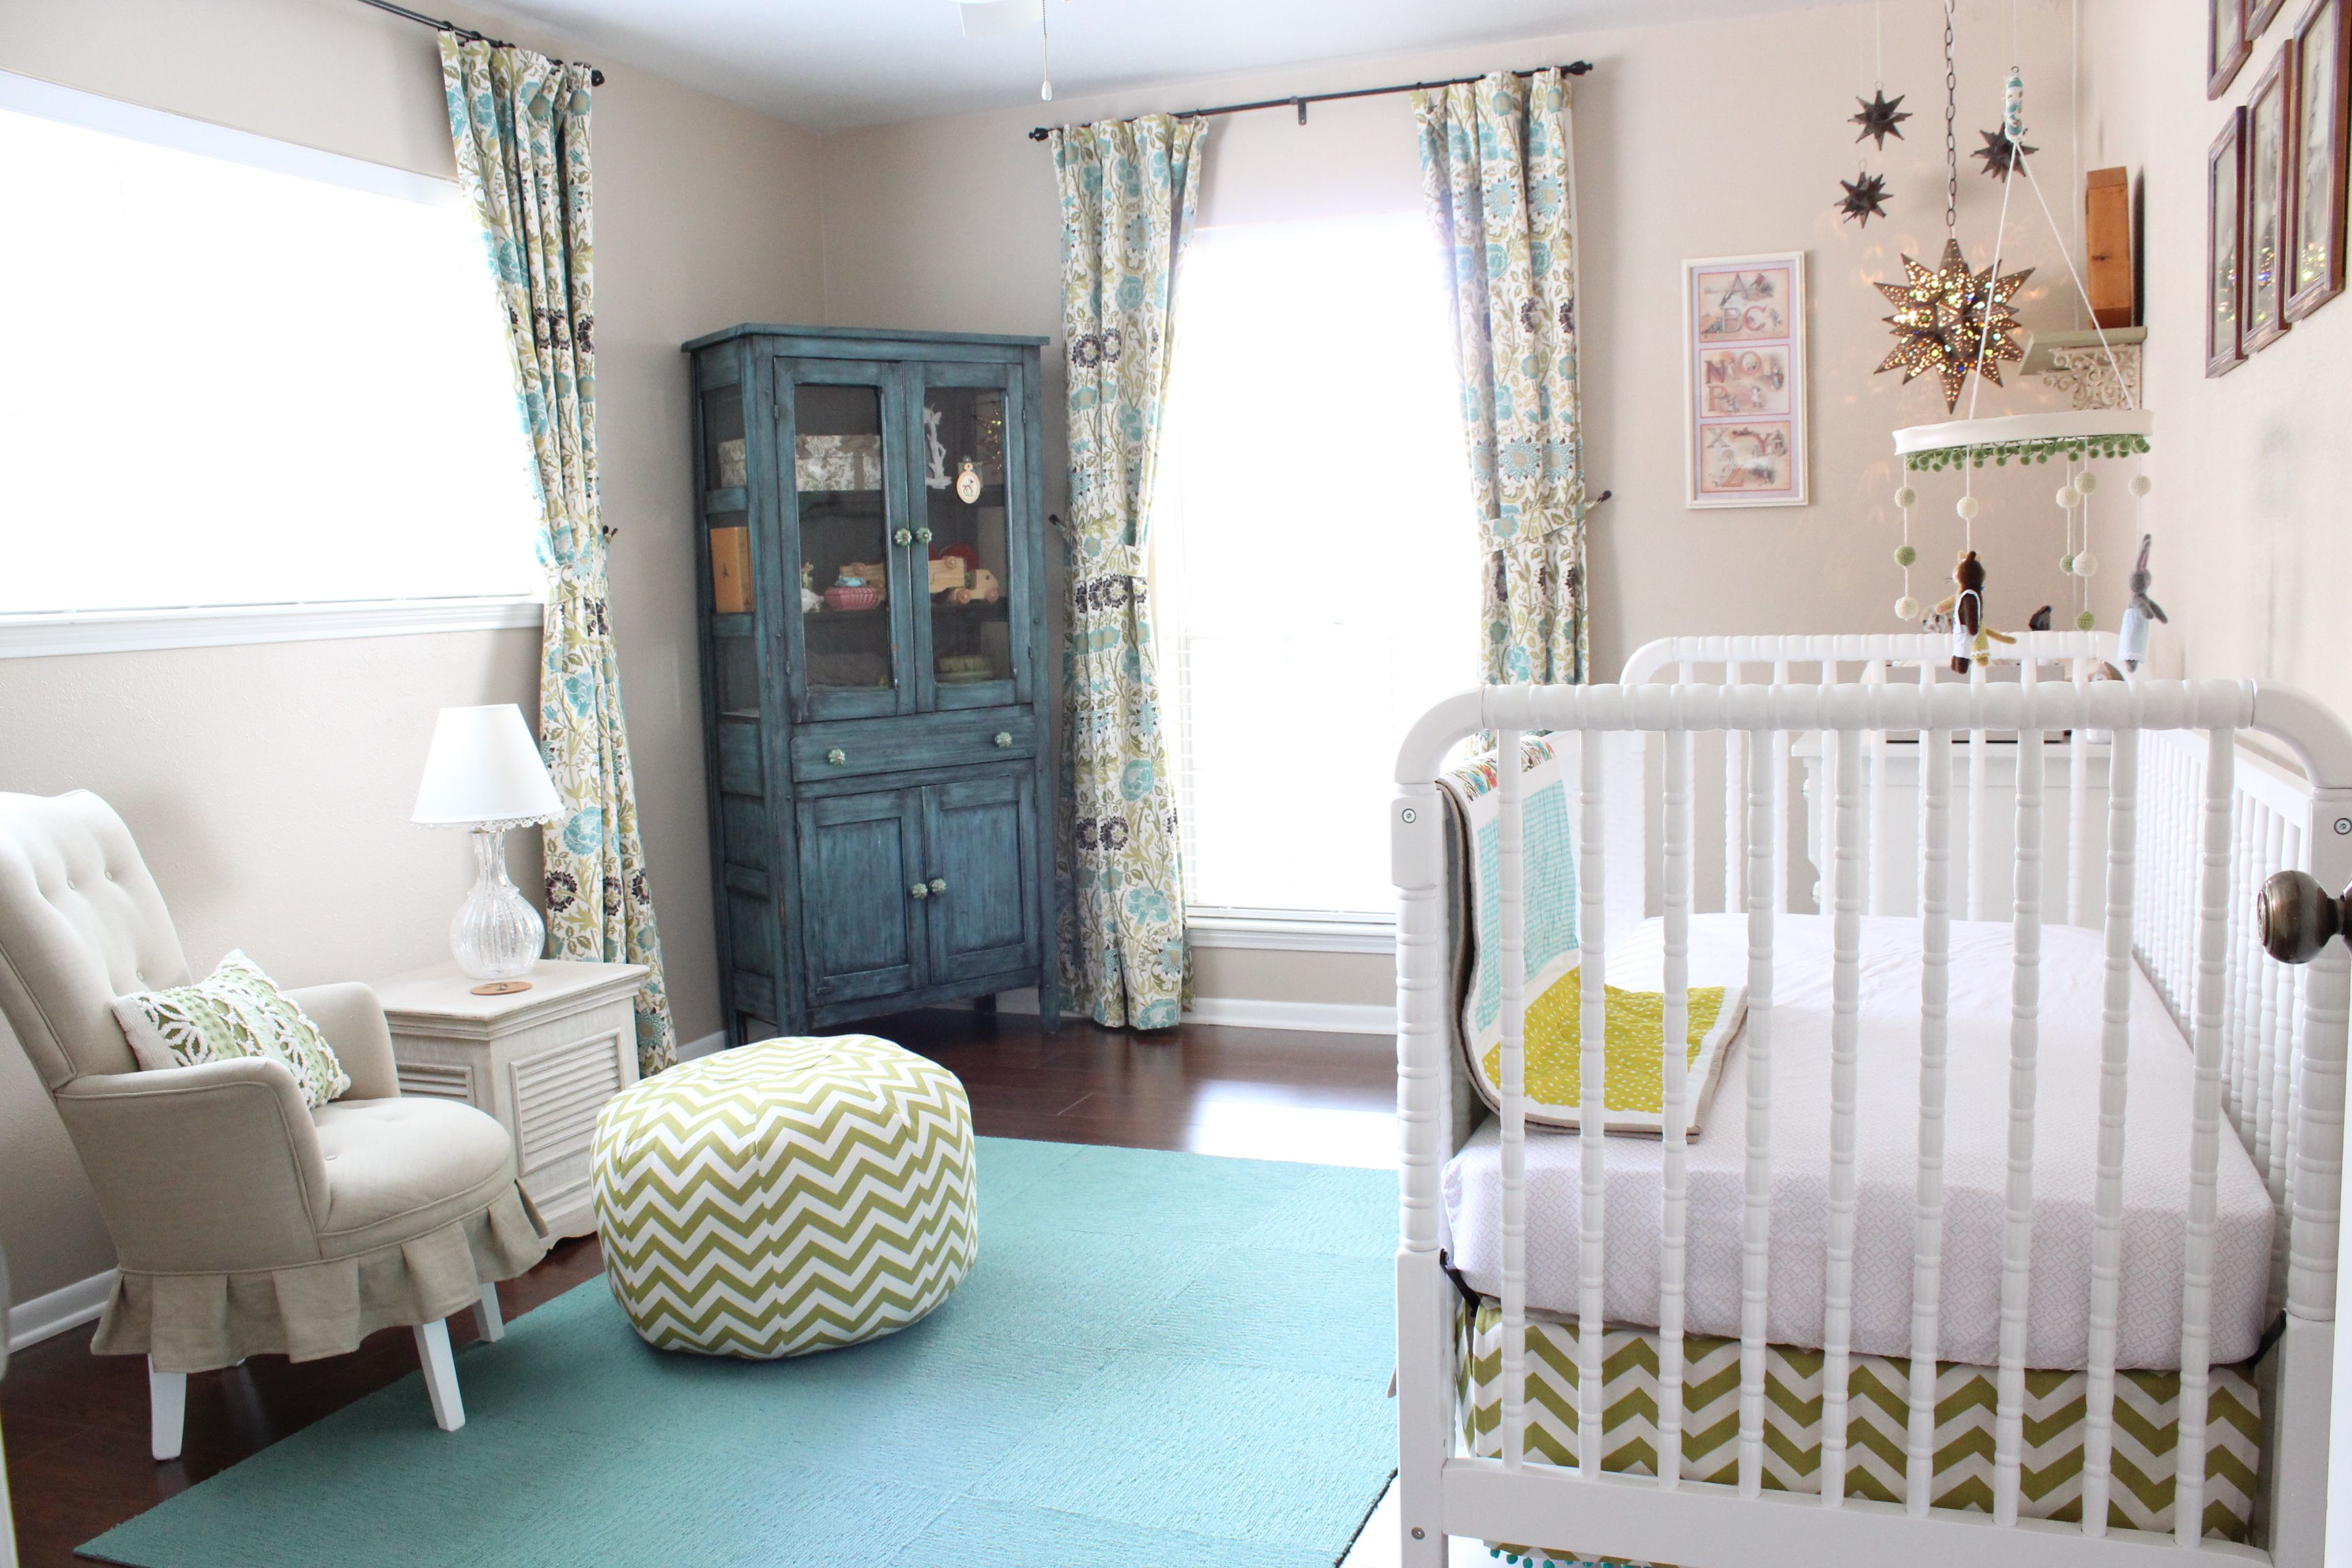 Nursery Done In Teal And Green With Fl Feminie Touches